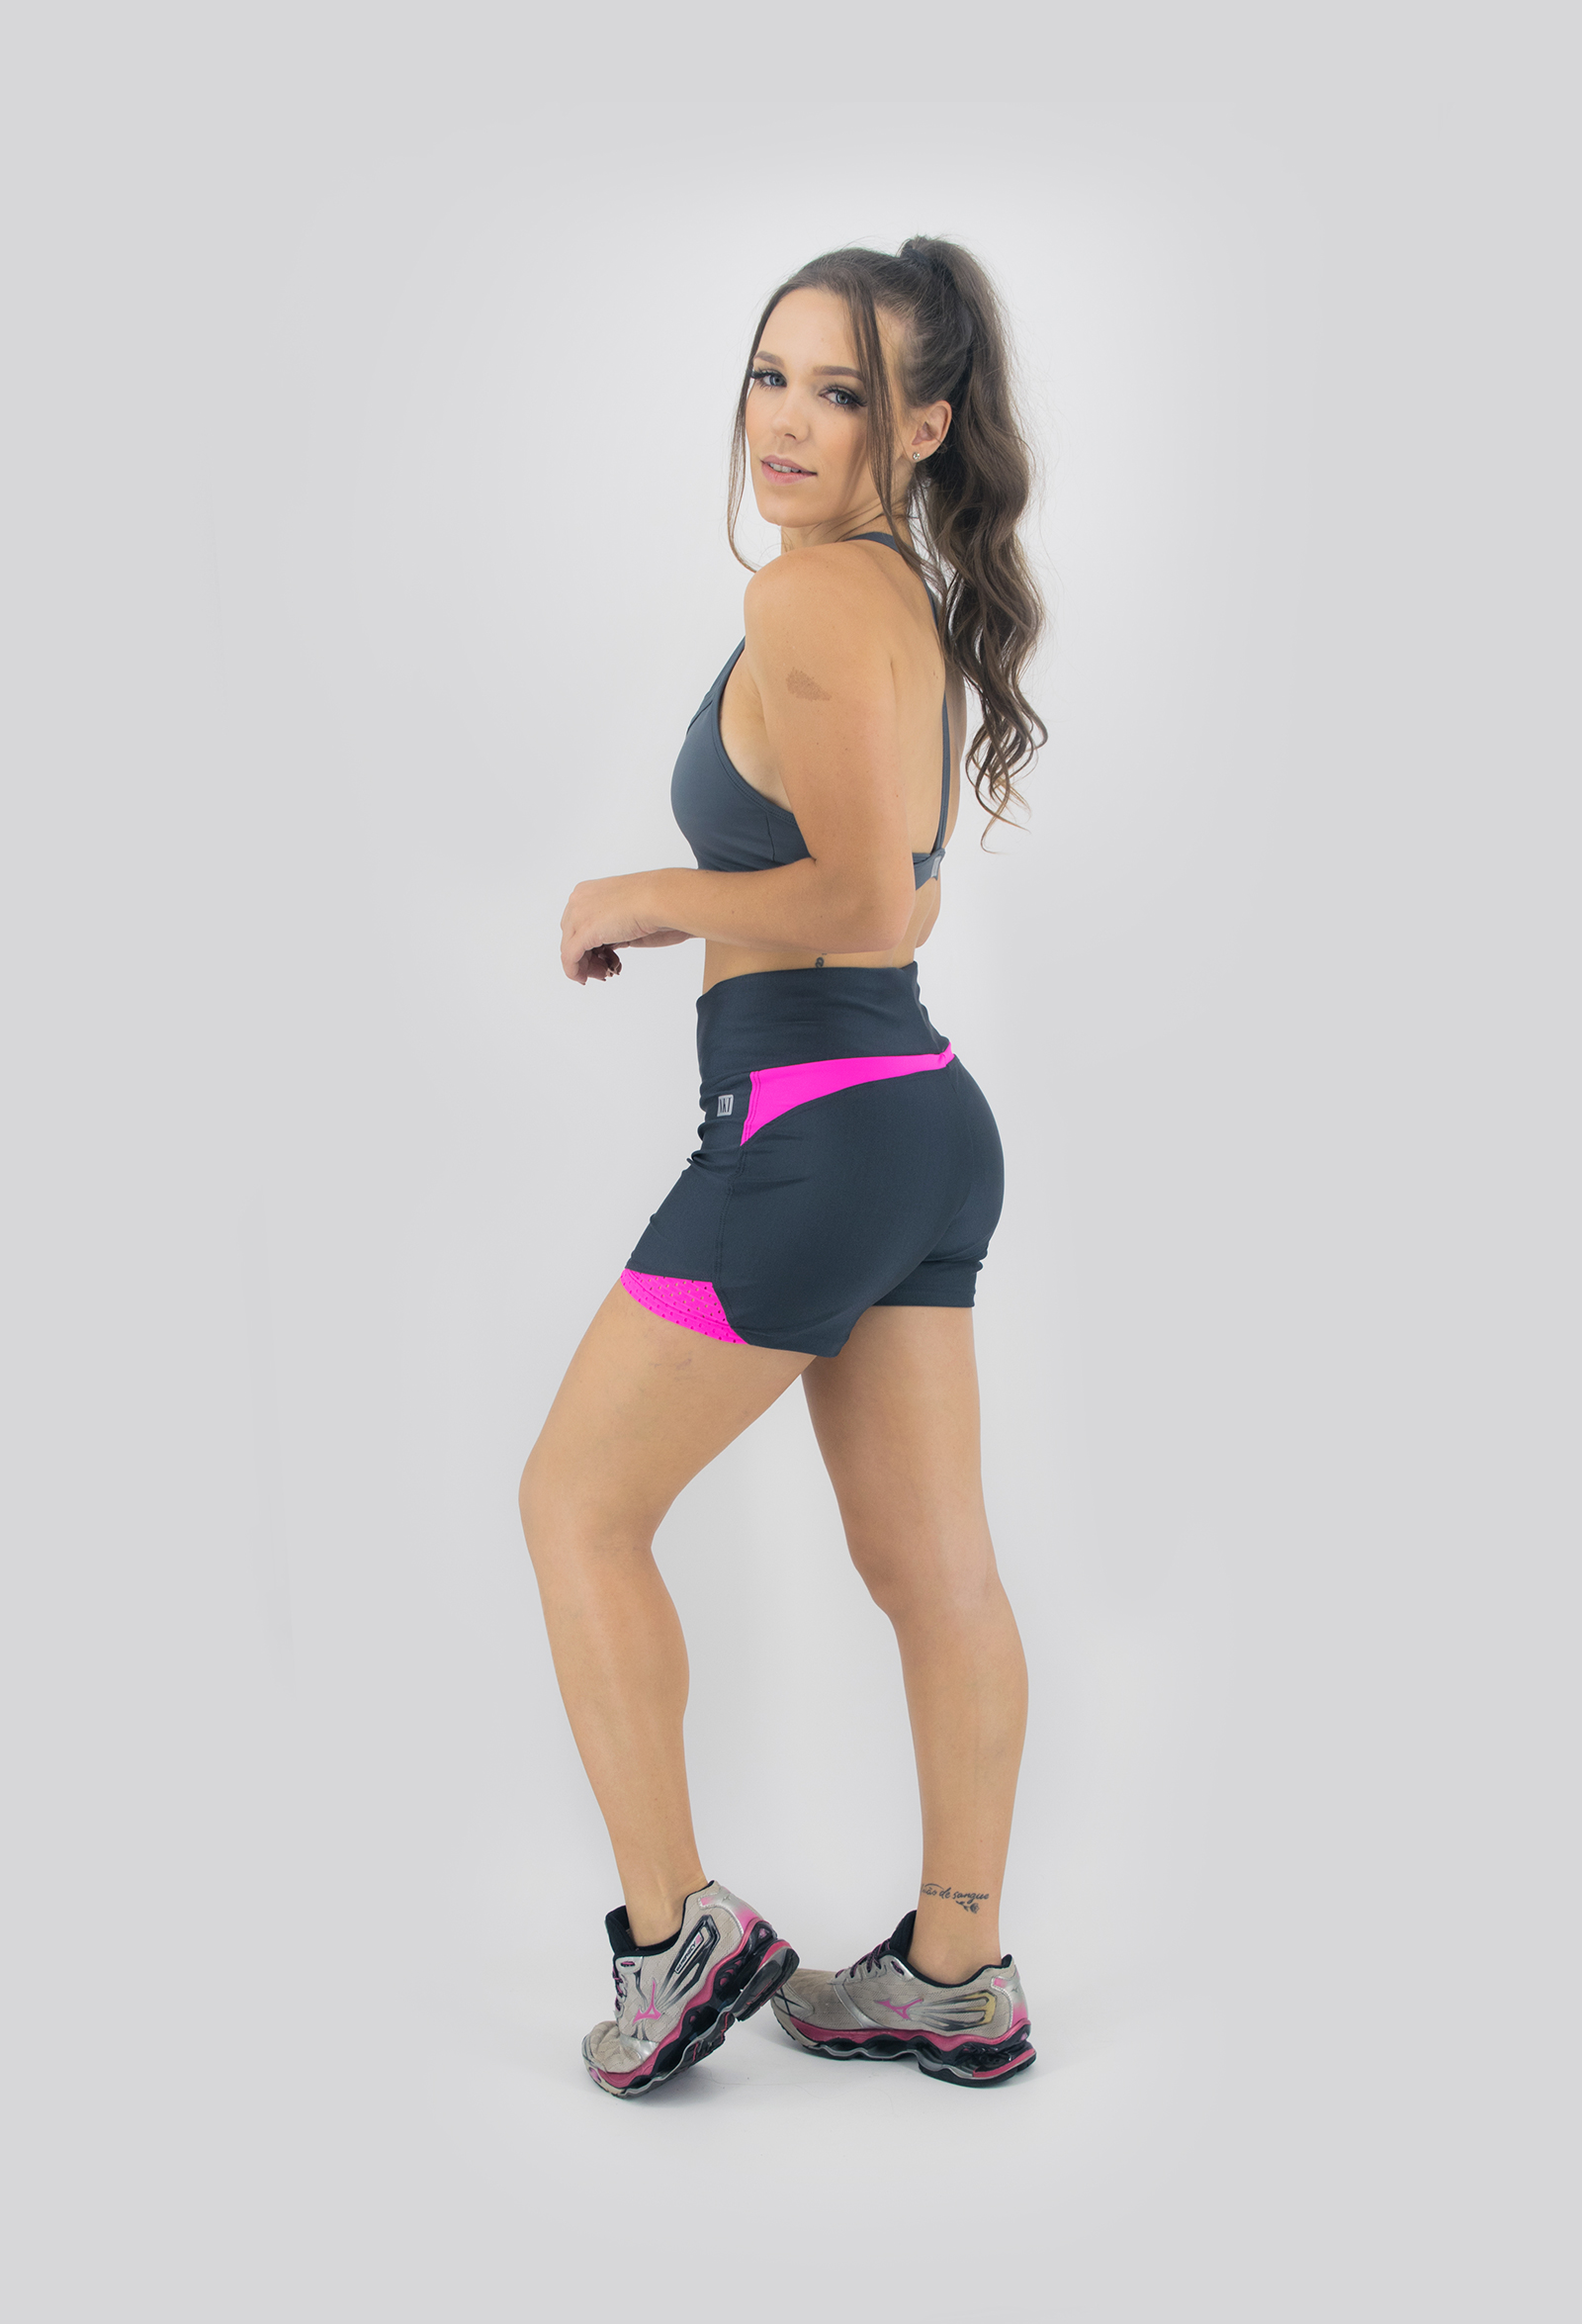 Shorts Stunning Chumbo, Coleção Move Your Body - NKT Fitwear Moda Fitness